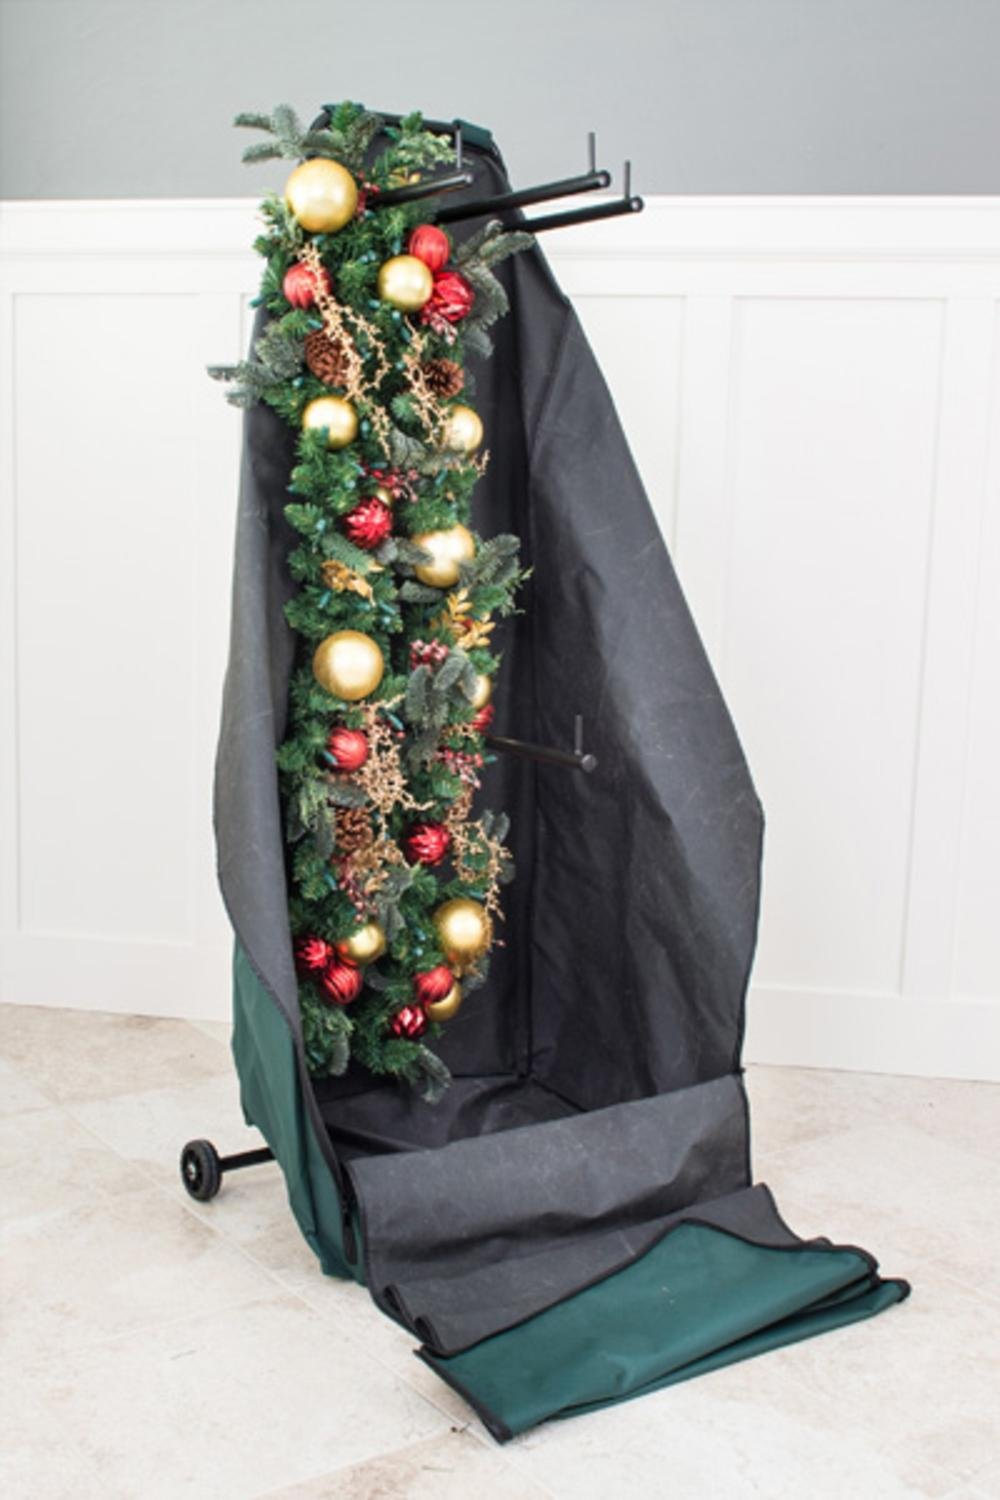 TreeKeeper Christmas Garland/Wreath Protective Deluxe Rolling Storage Bag which Holds 4 Large Garlands and 2 Wreaths